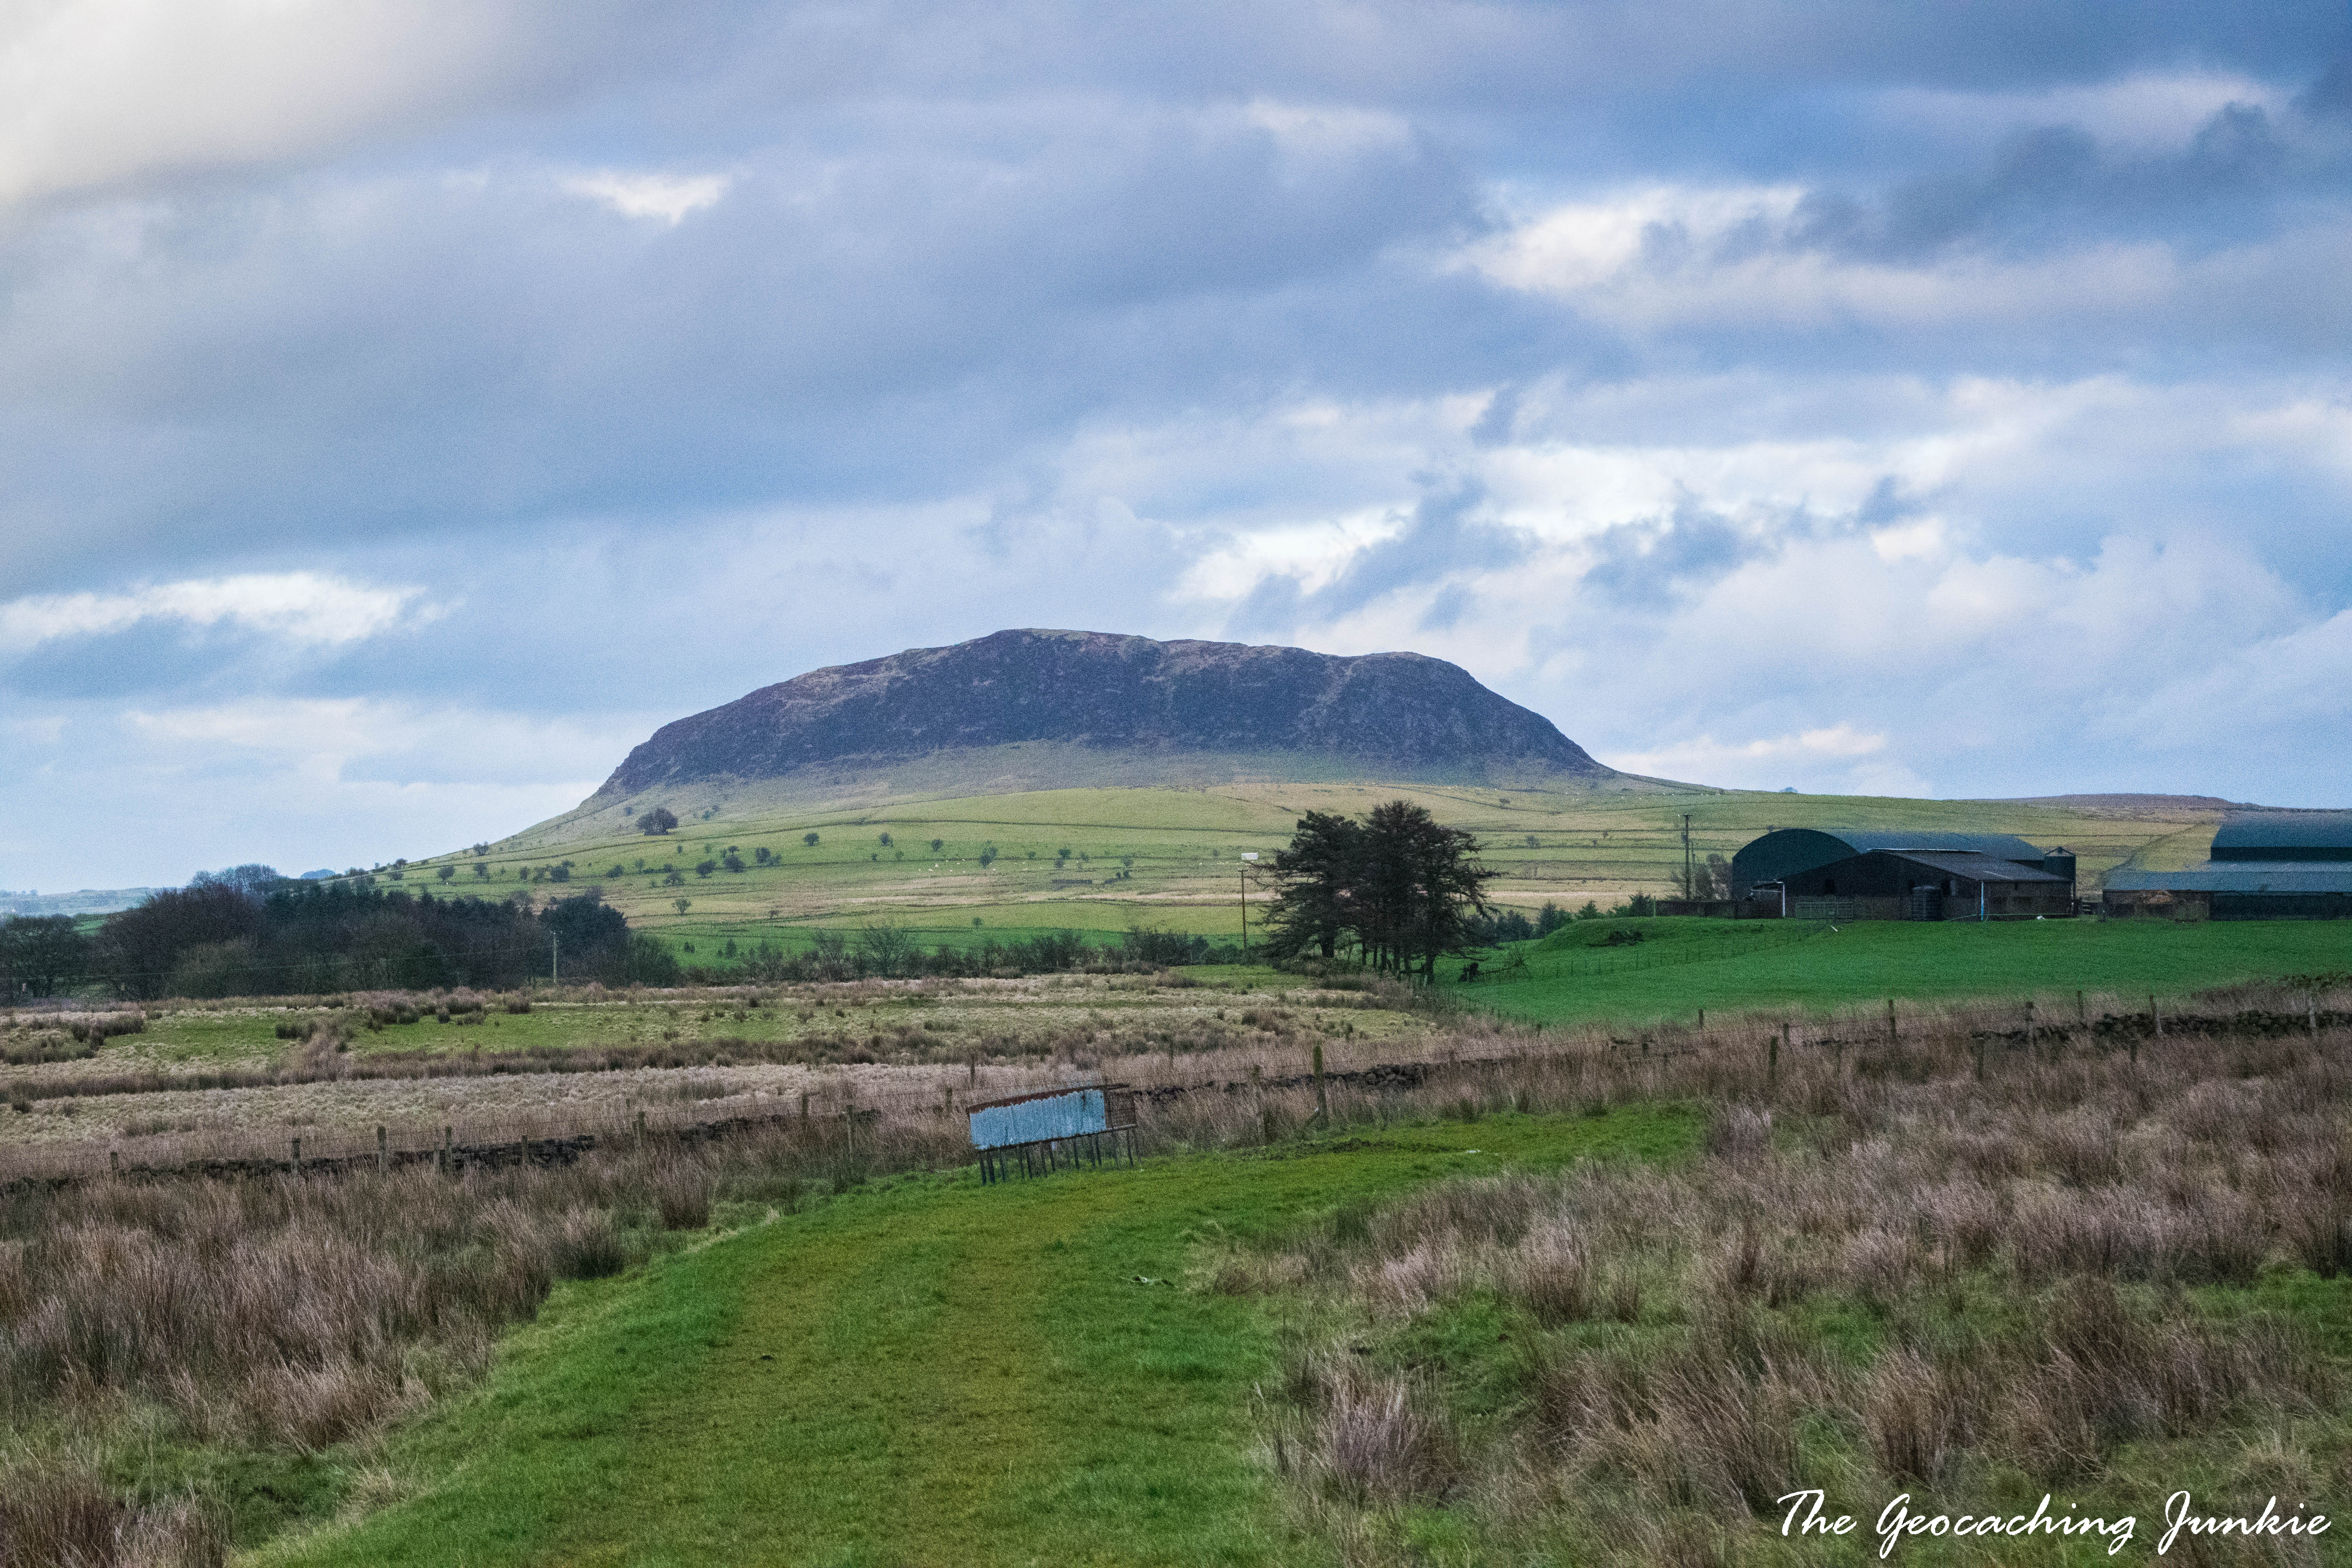 The Geocaching Junkie: Slemish - St Patrick's Mountain